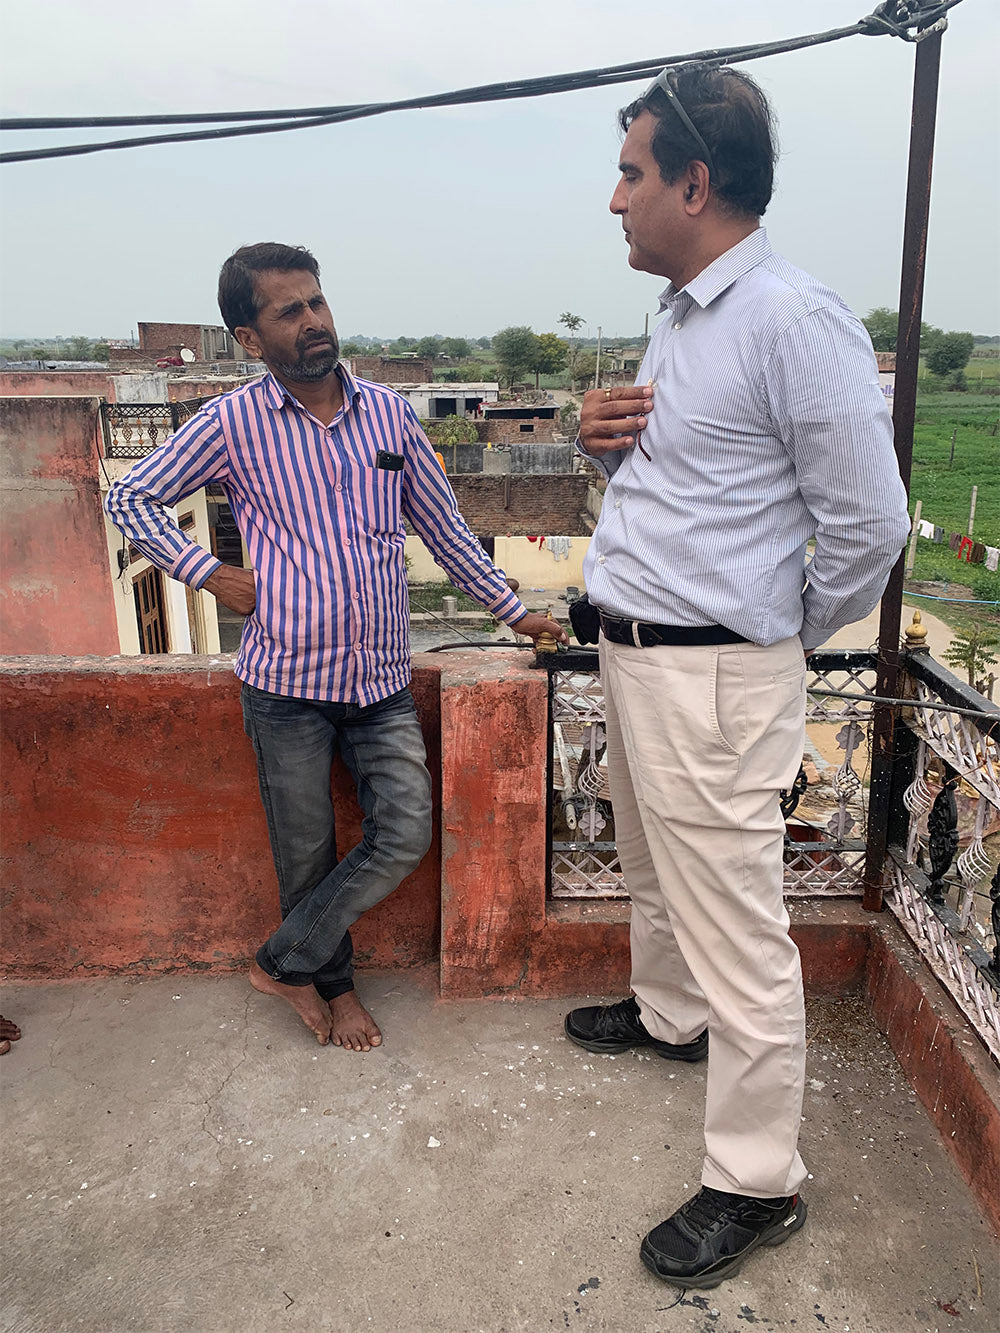 Roof top meeting to understand the communities that have moved